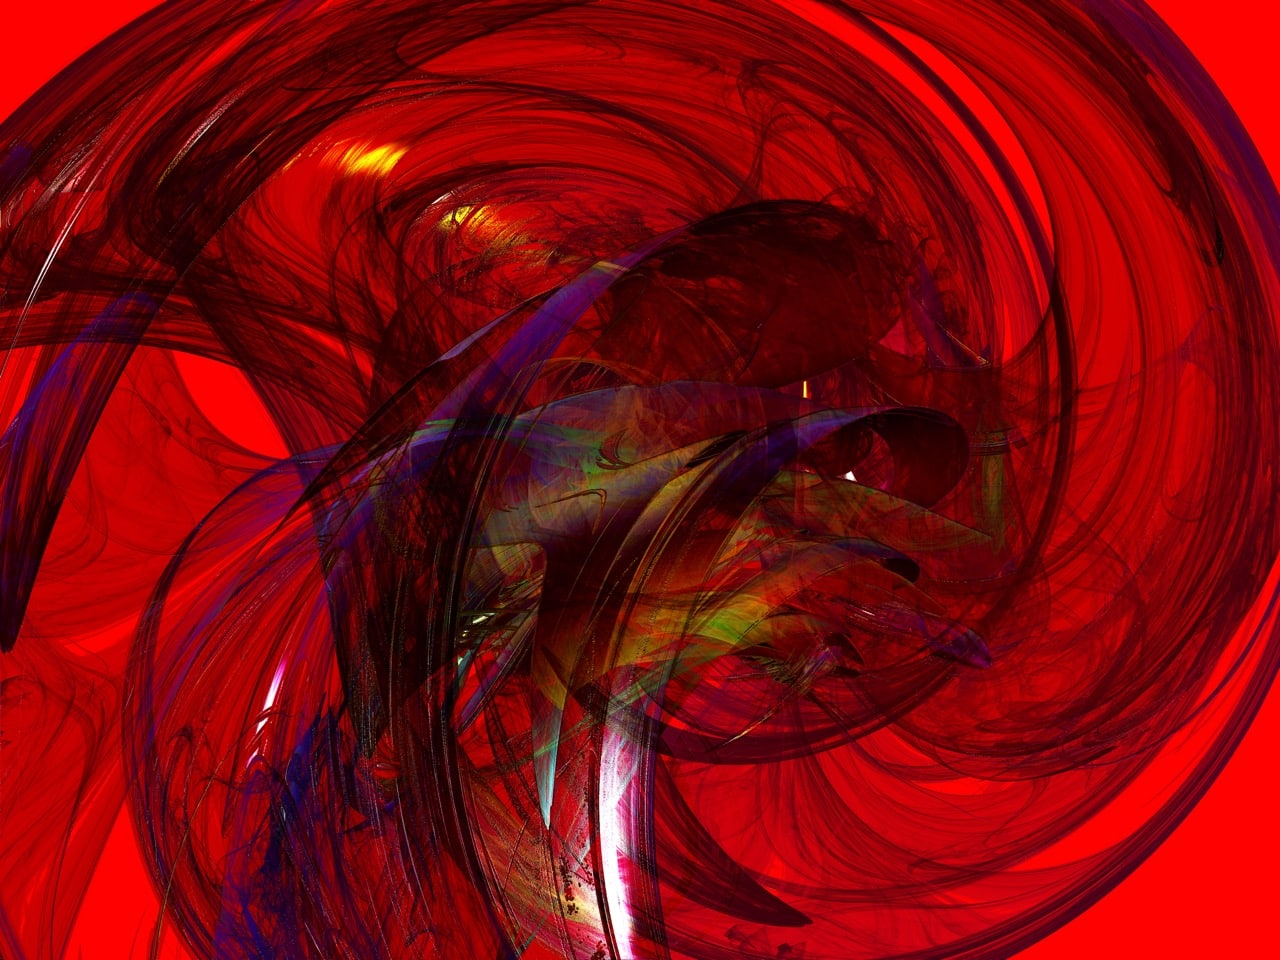 red fractal image with purple swooshing lines though it